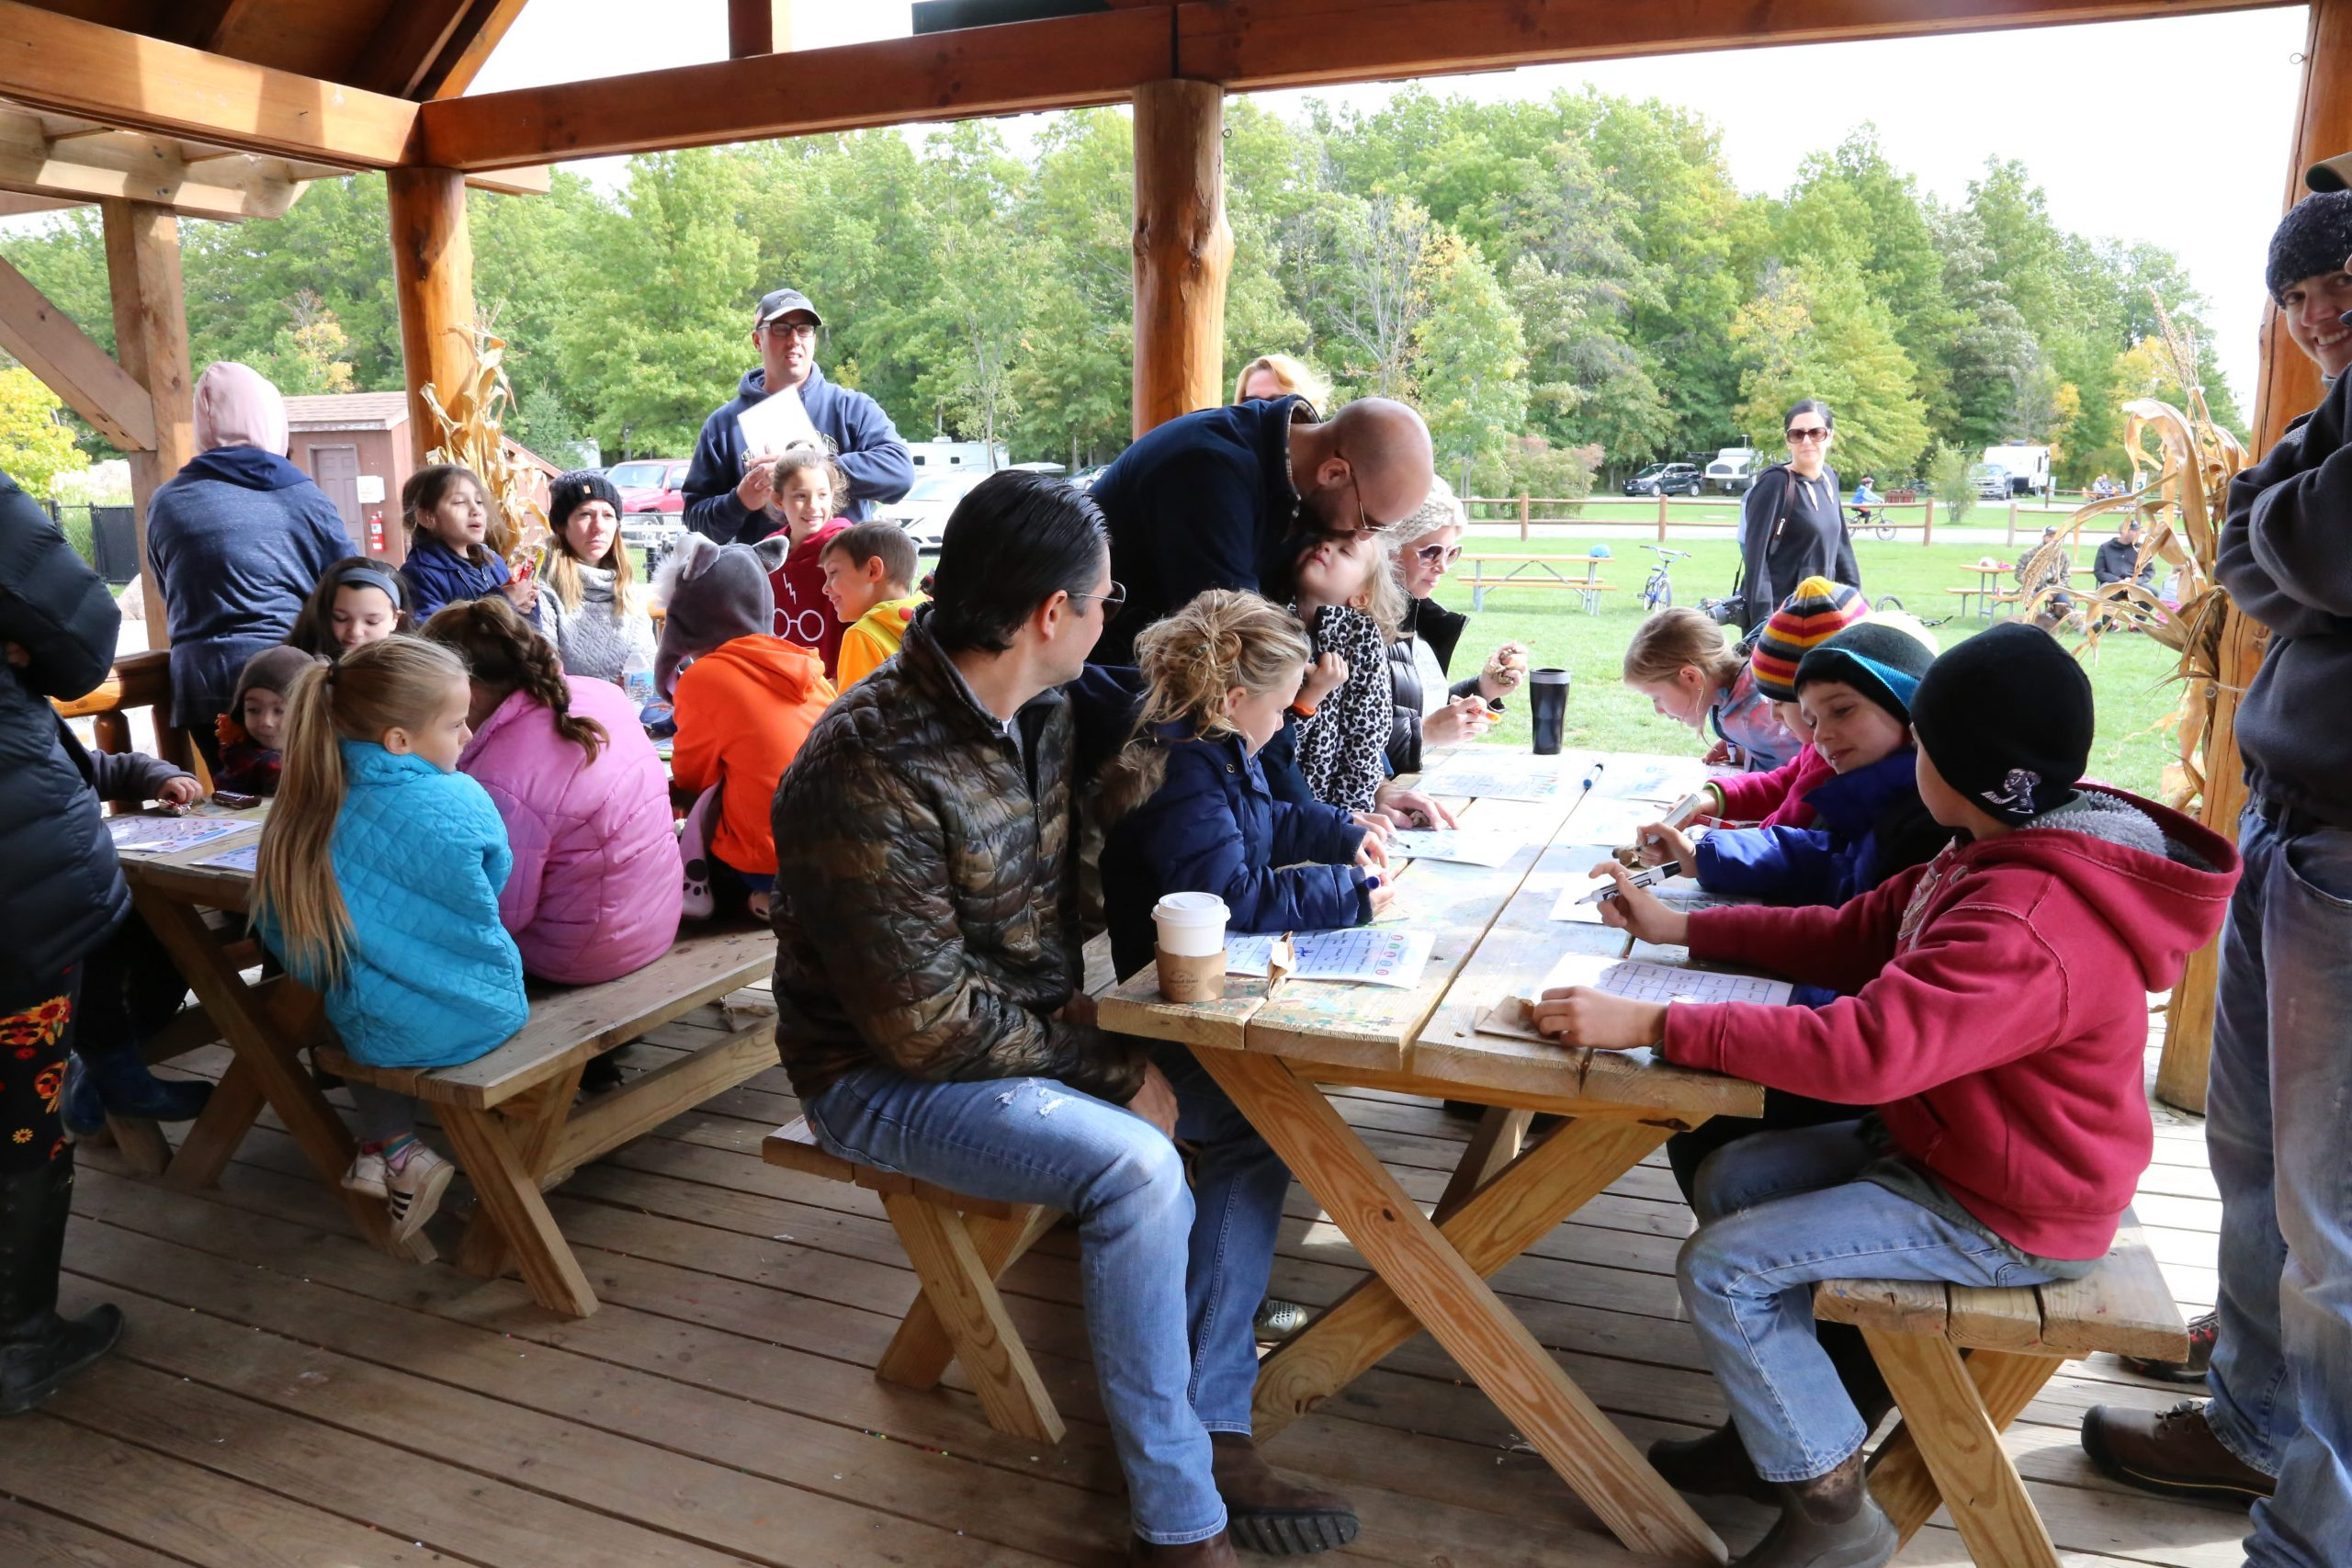 Adults and Children sitting on picnic tables playing bingo